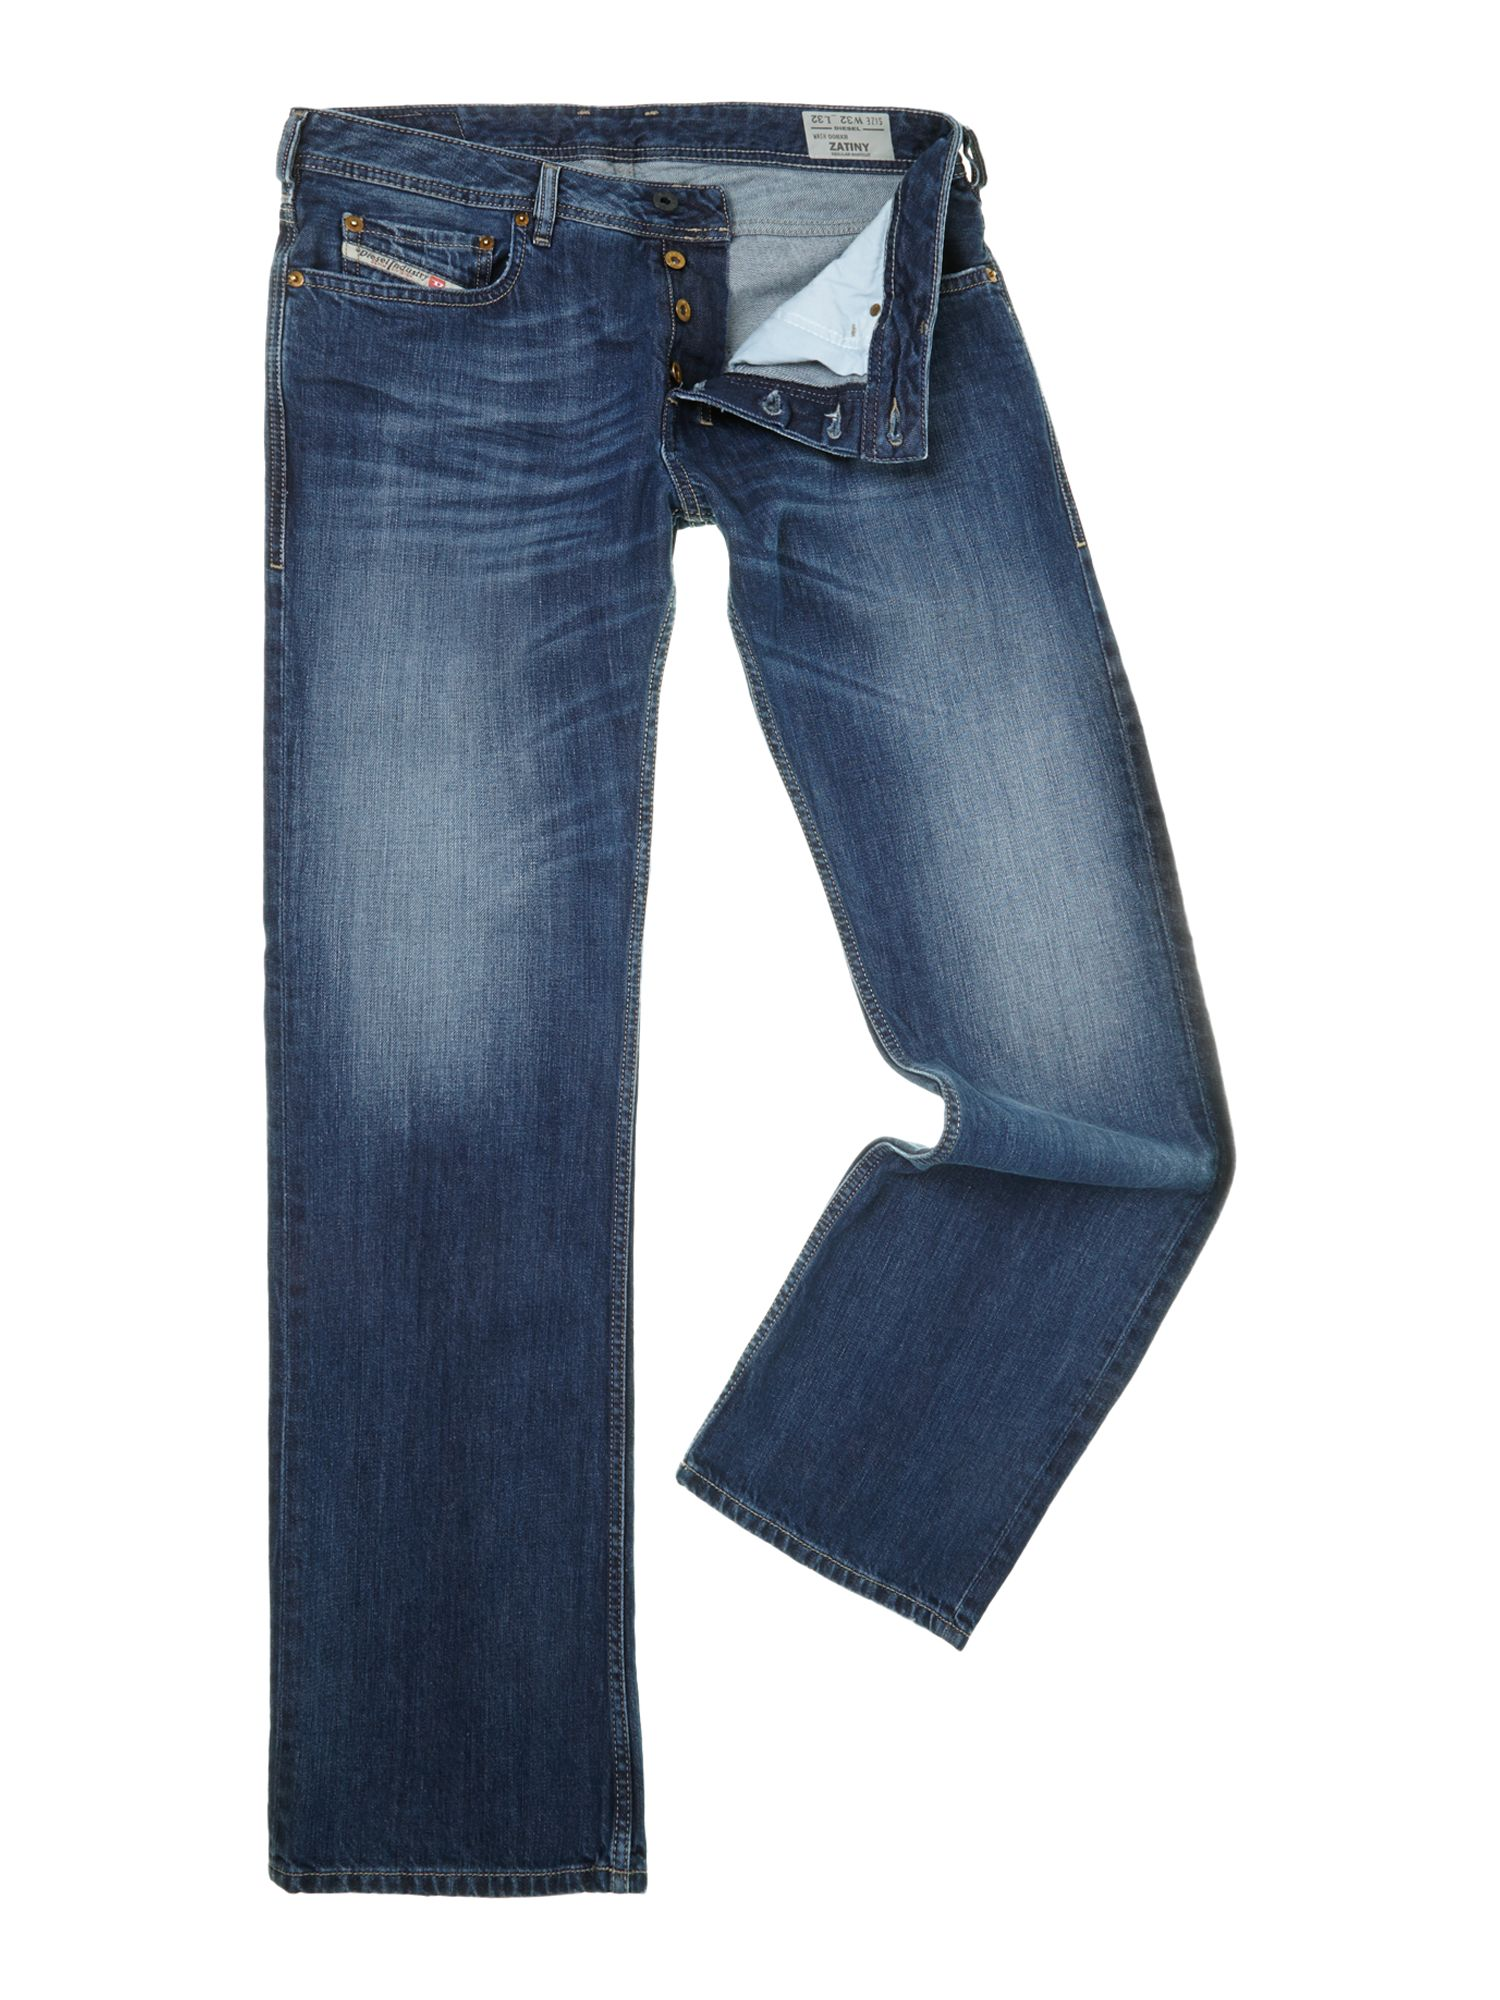 Name Brand Jeans For Women